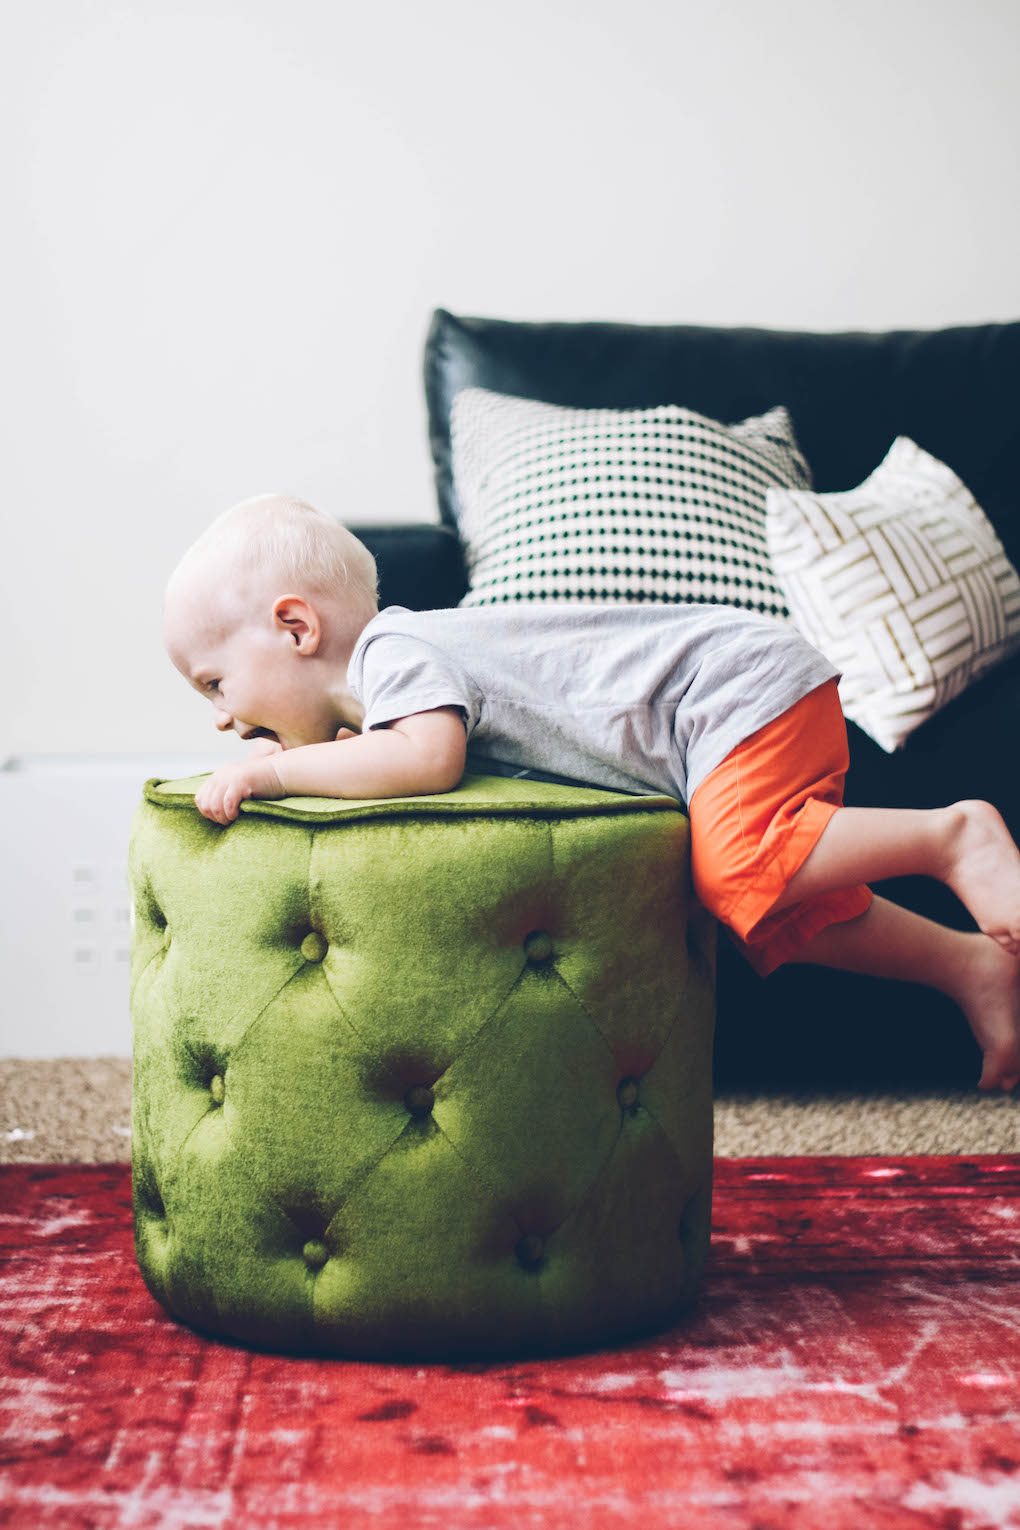 little boy climbing on green ottoman in living room with pink rug